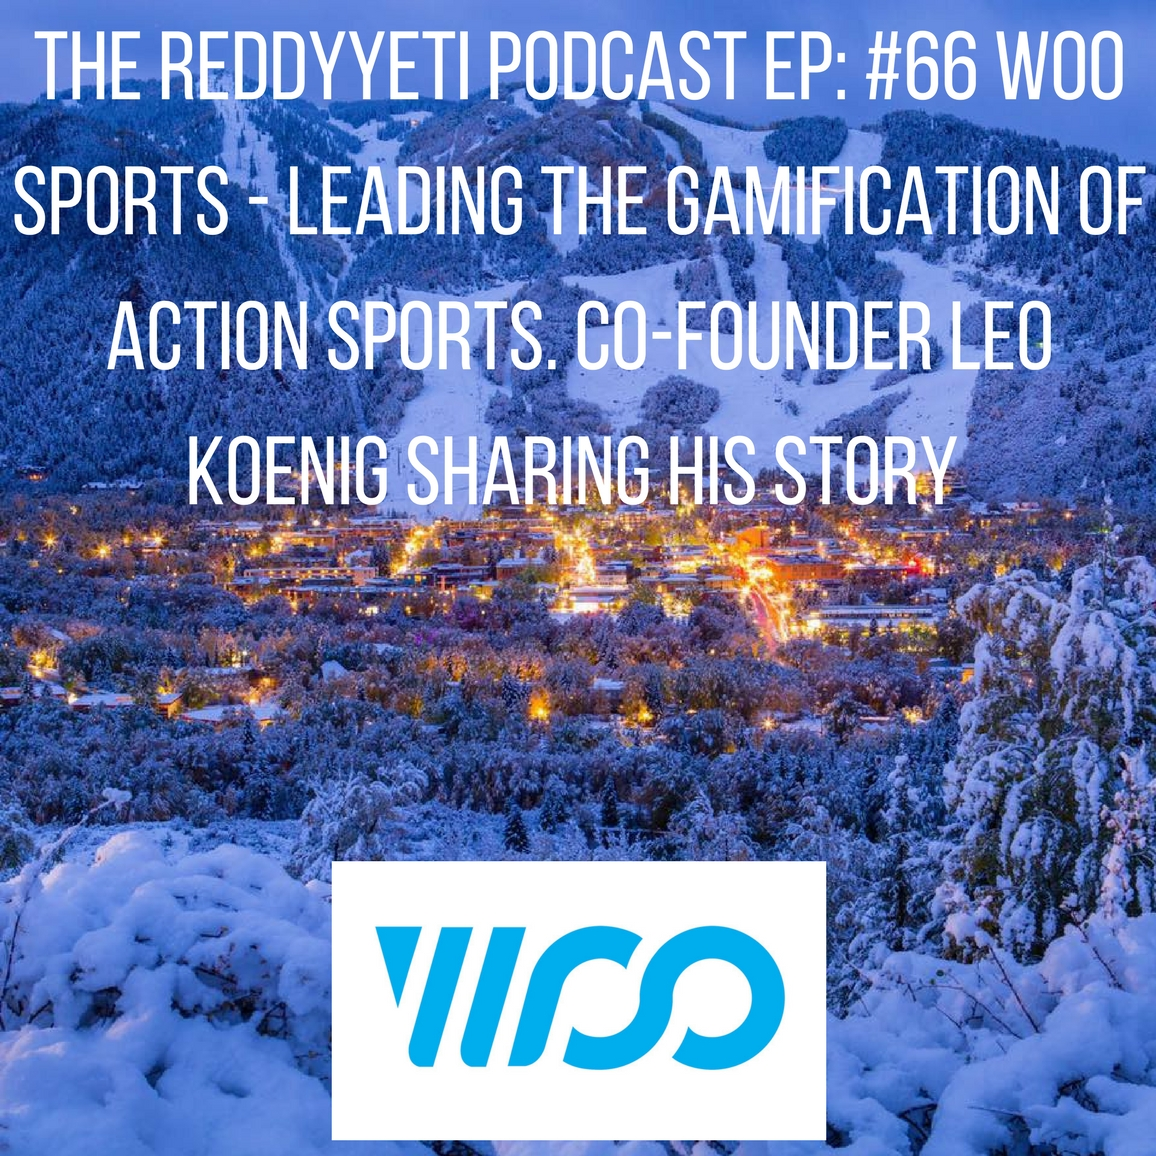 Woo Sports Podcast image.jpg